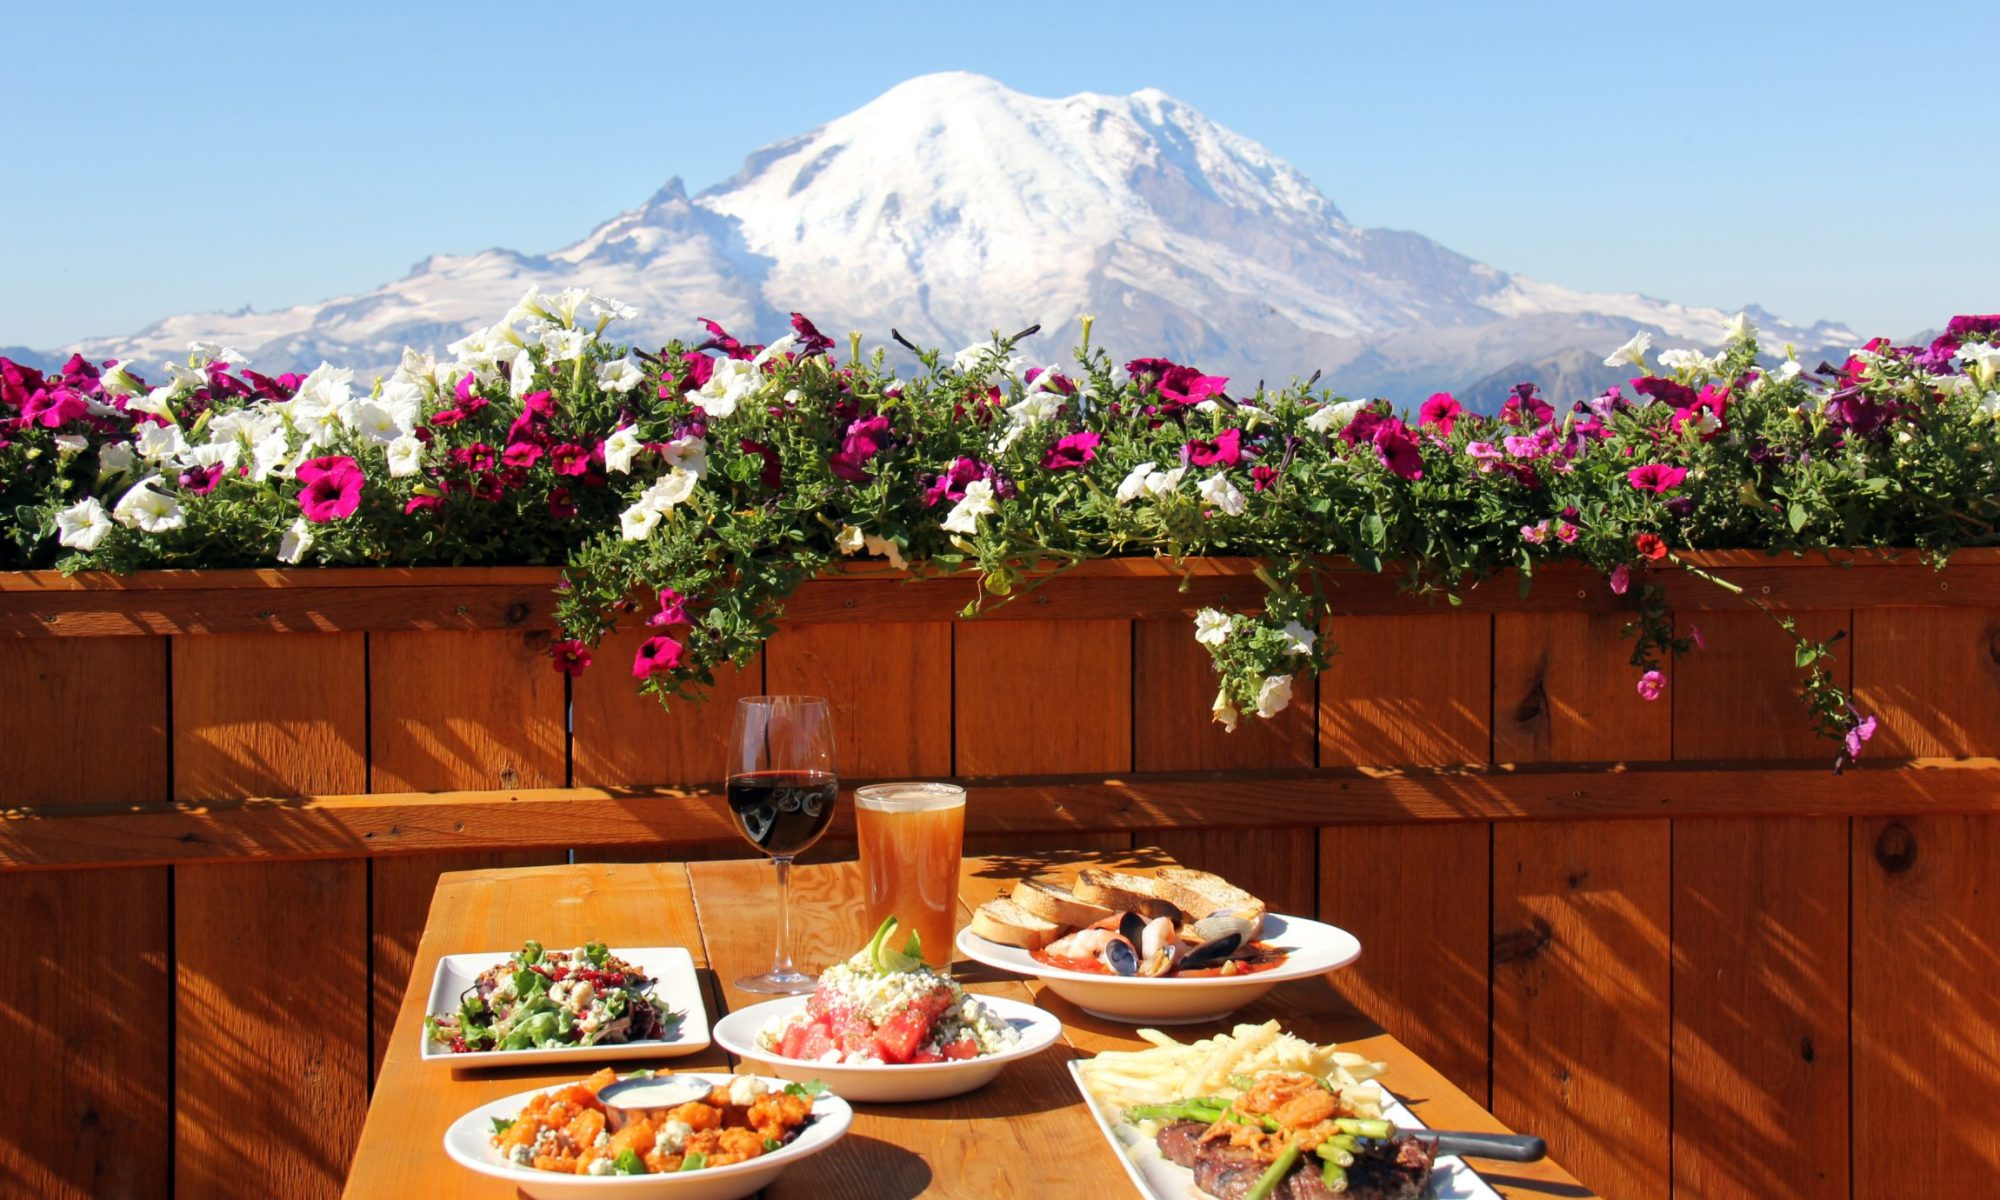 A table with a view of Mount Rainer- Crystal Mountain Resort in Washington state acquired by Alterra Mountain Company.